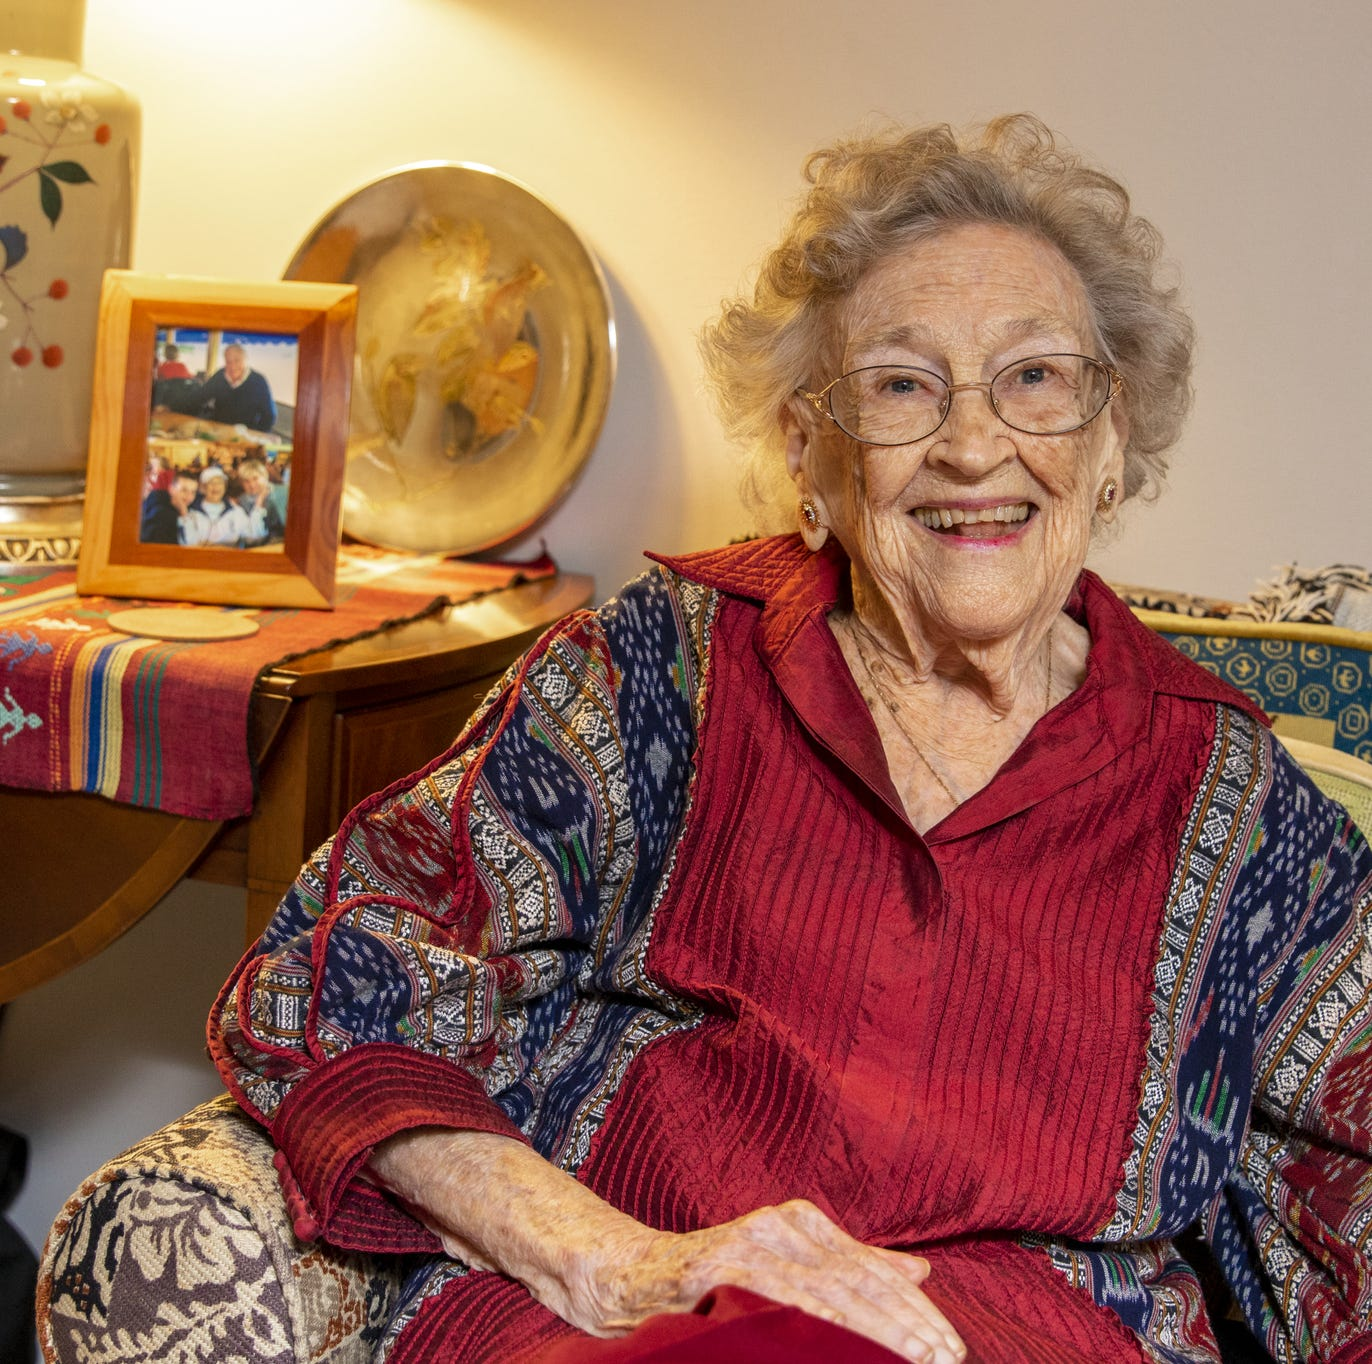 100-year-old Ball family member to get Ball State University degree